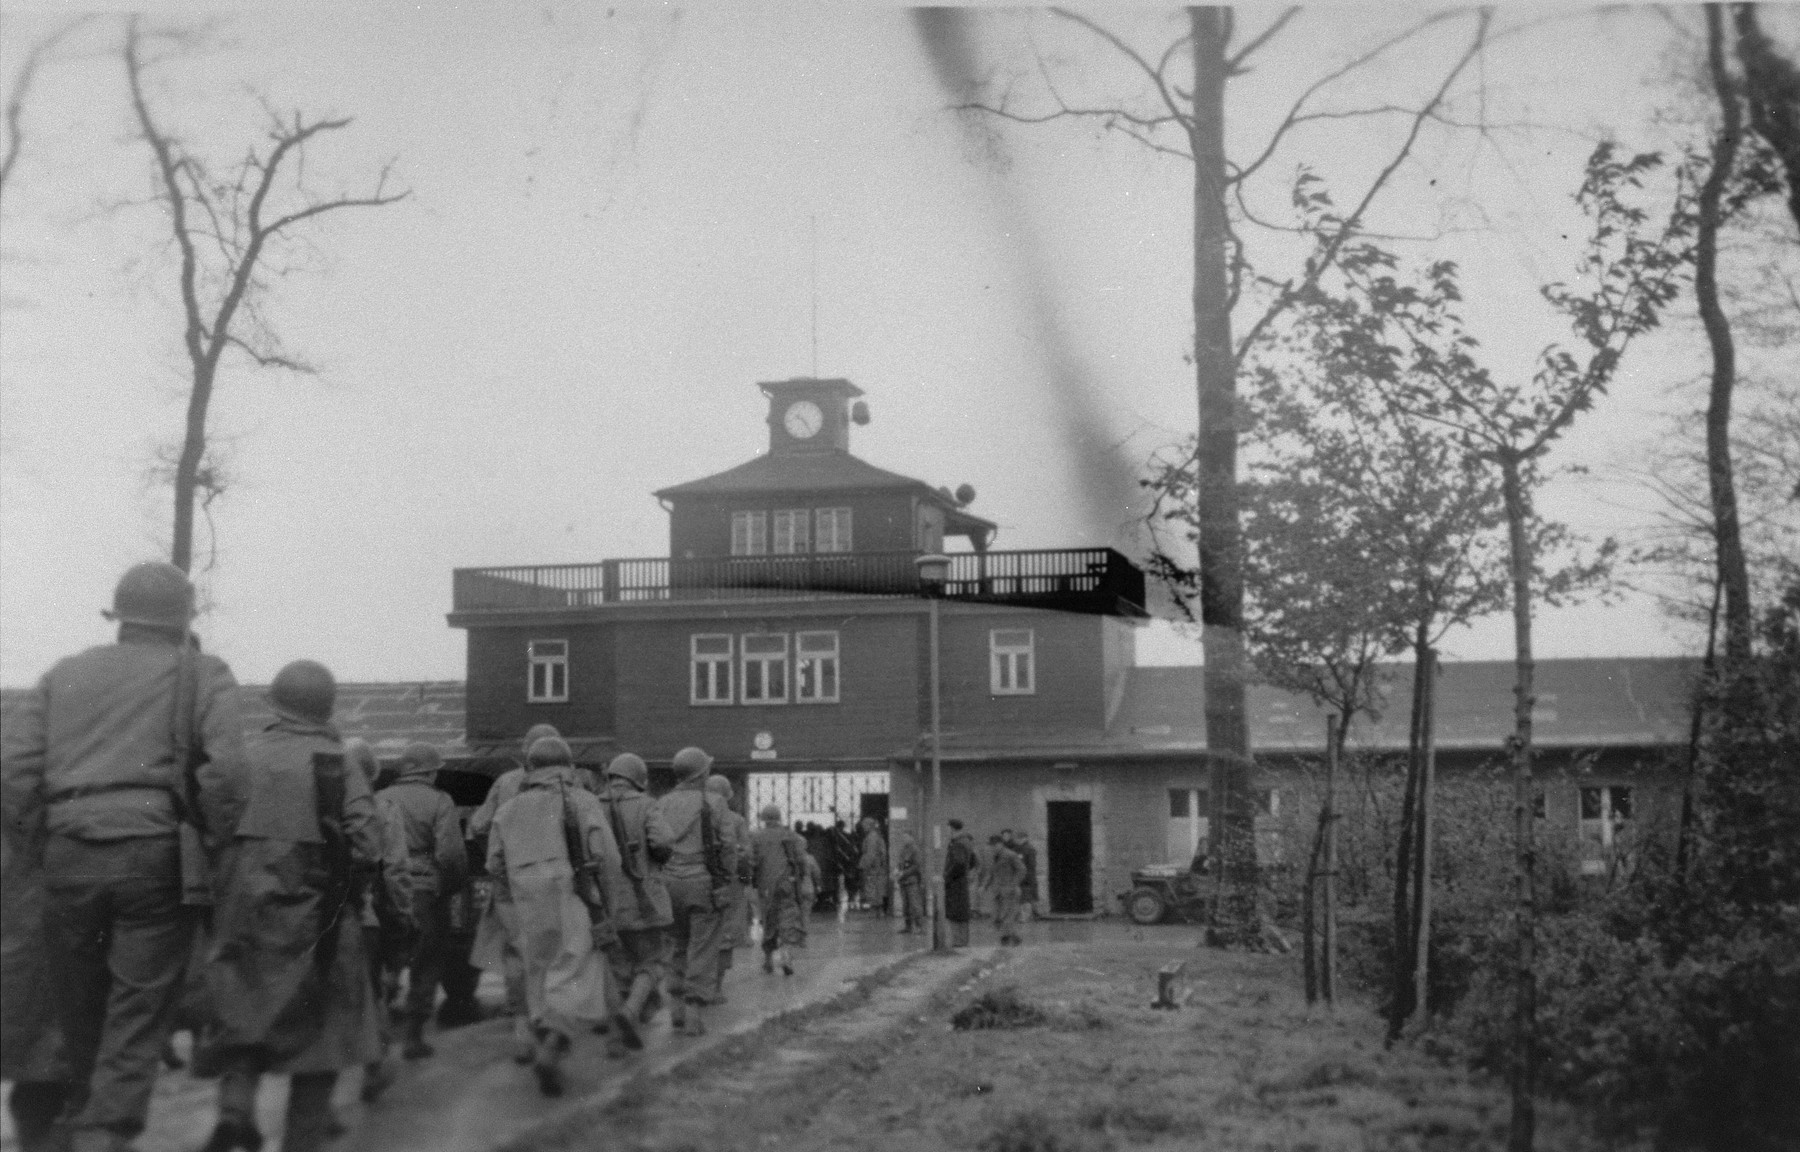 American soldiers march into Buchenwald upon liberation of the camp.